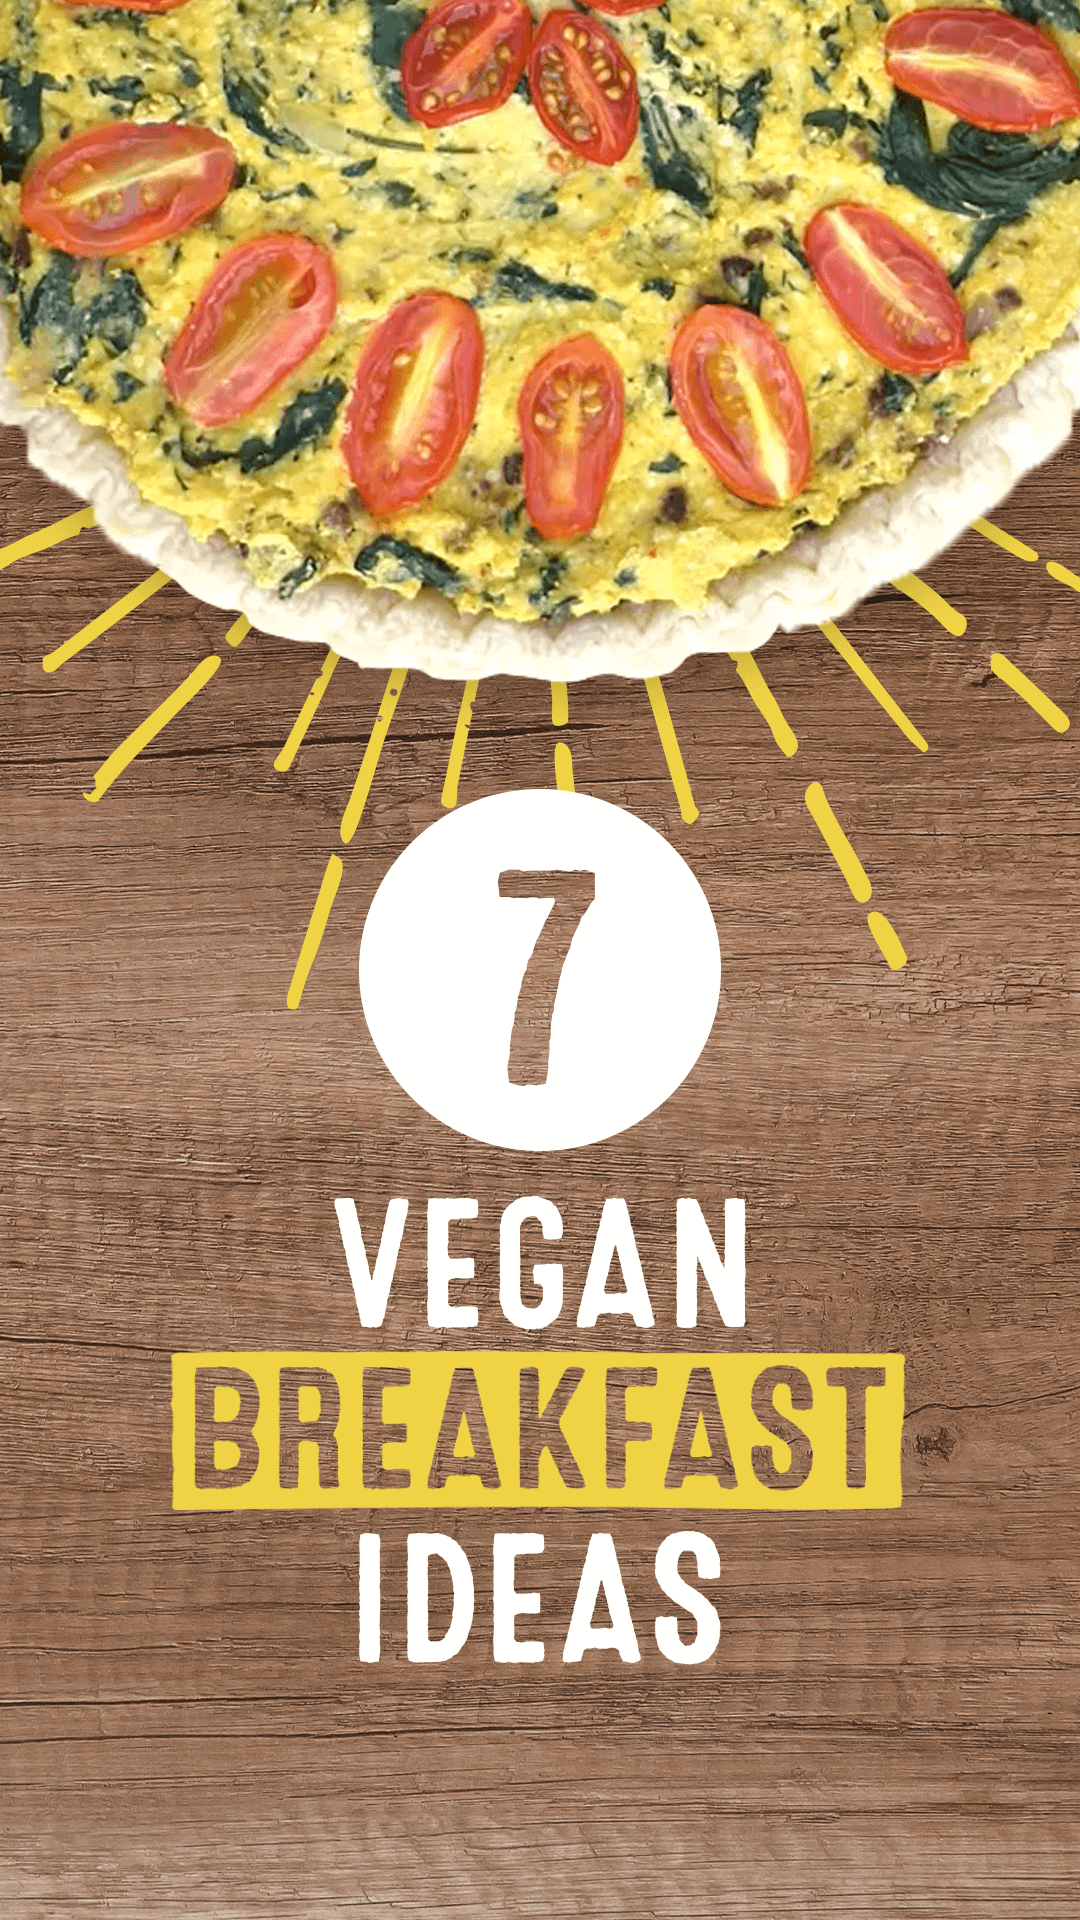 Here Are 7 Vegan Breakfast Ideas to Try This Week